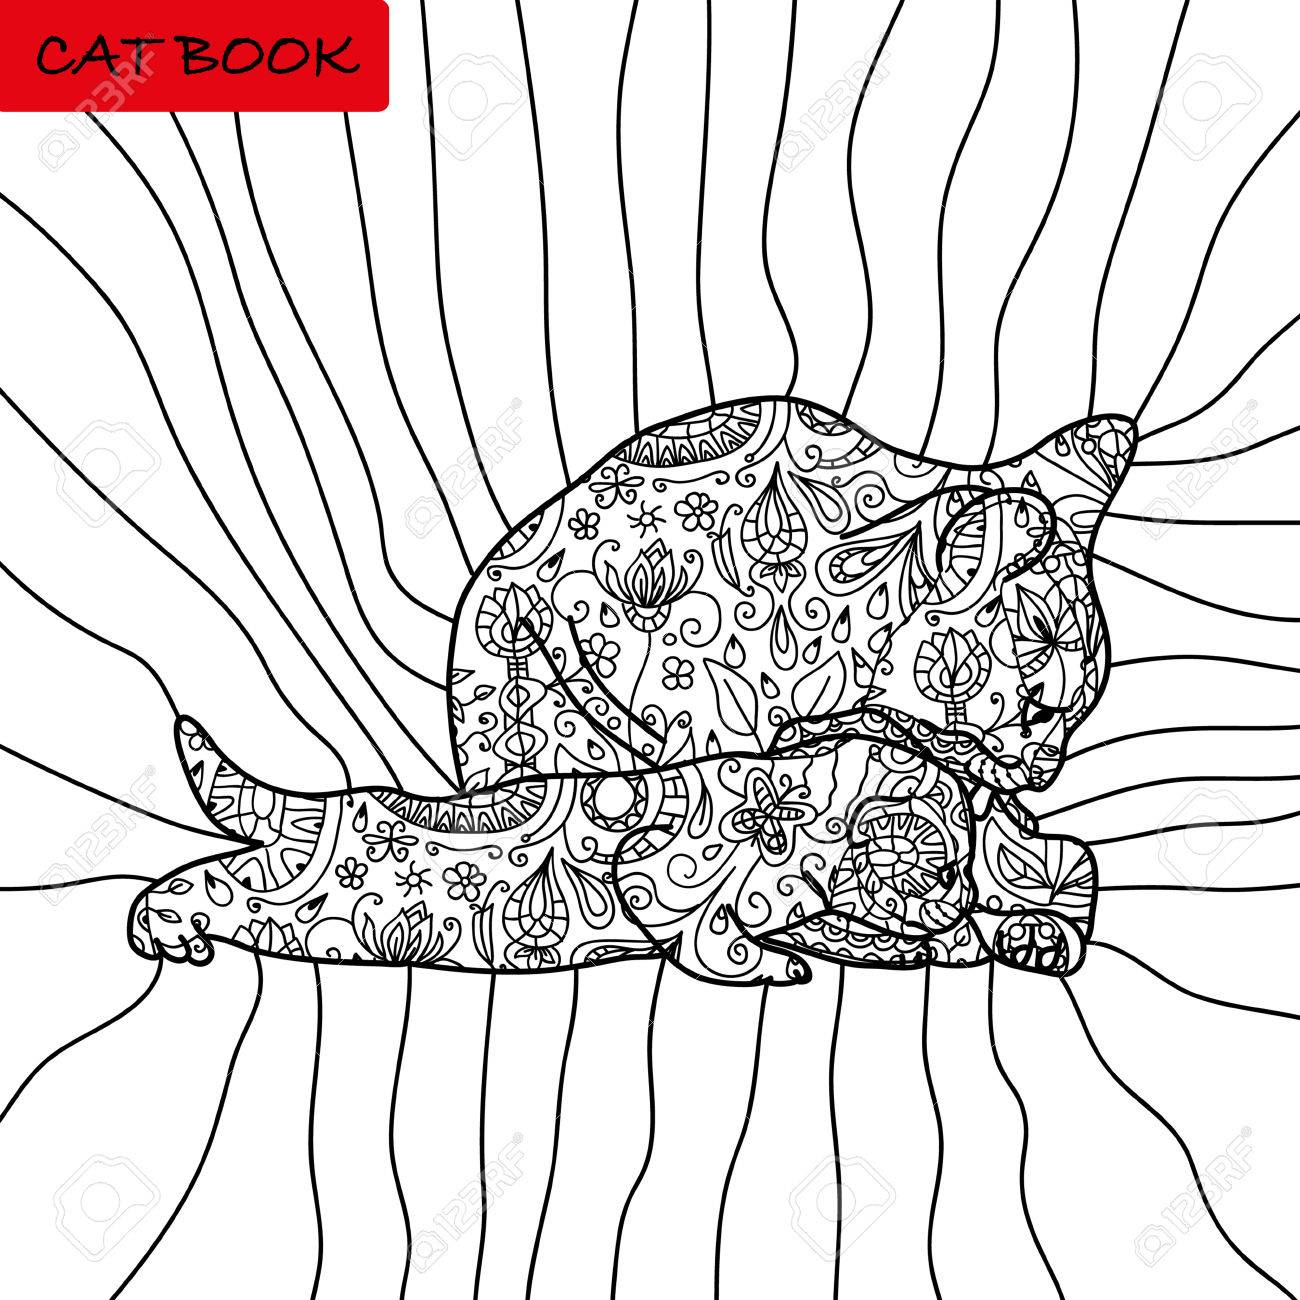 Book Coloring Pages For Adults And Children The Of Cat Mother